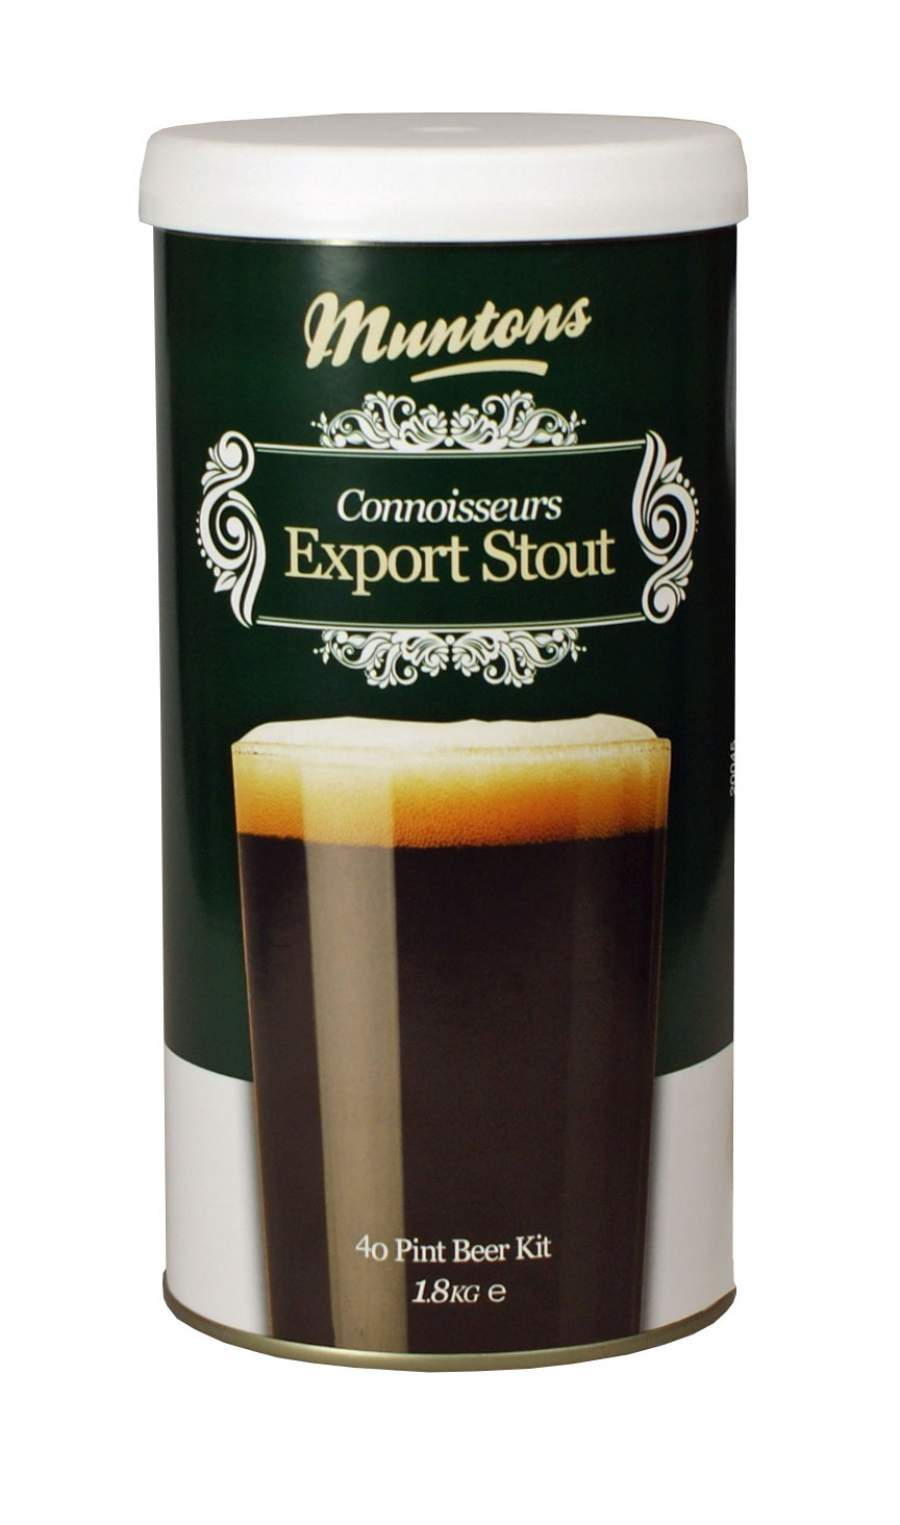 Muntons Liquid Malt Extract Kit, Connoissuer Export Stout_THUMBNAIL